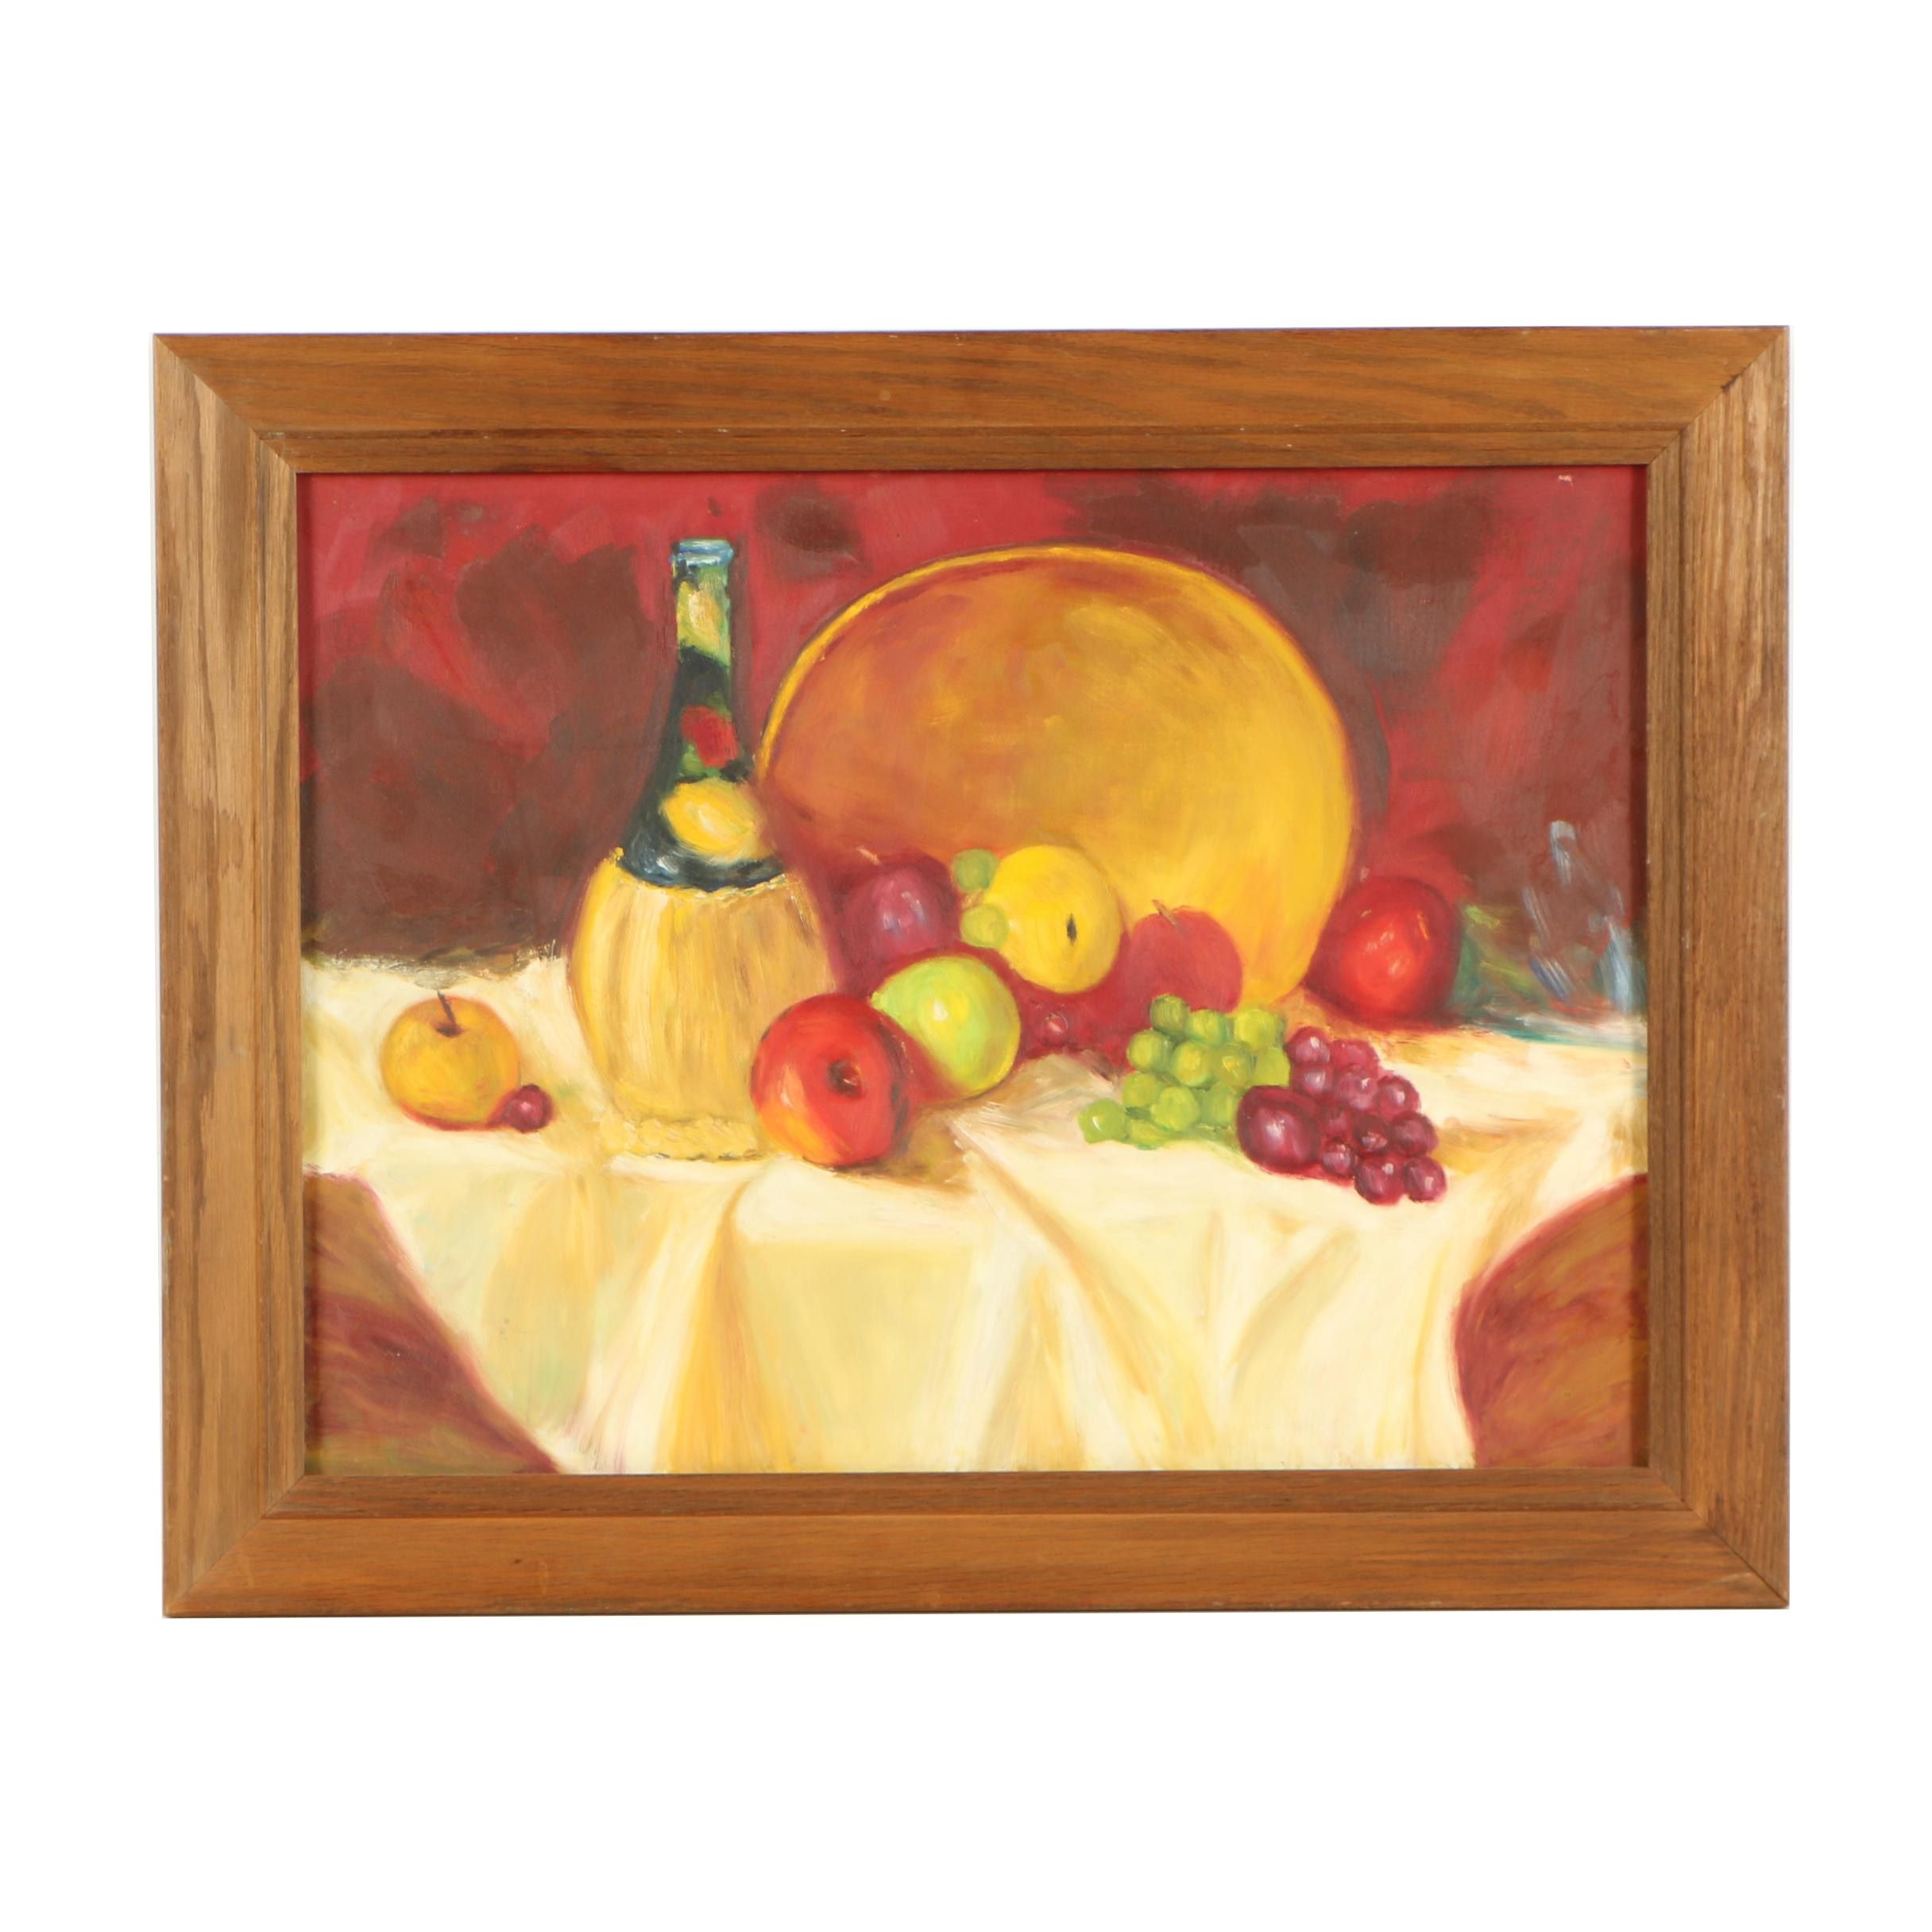 Mid 20th Century Still Life Oil Painting